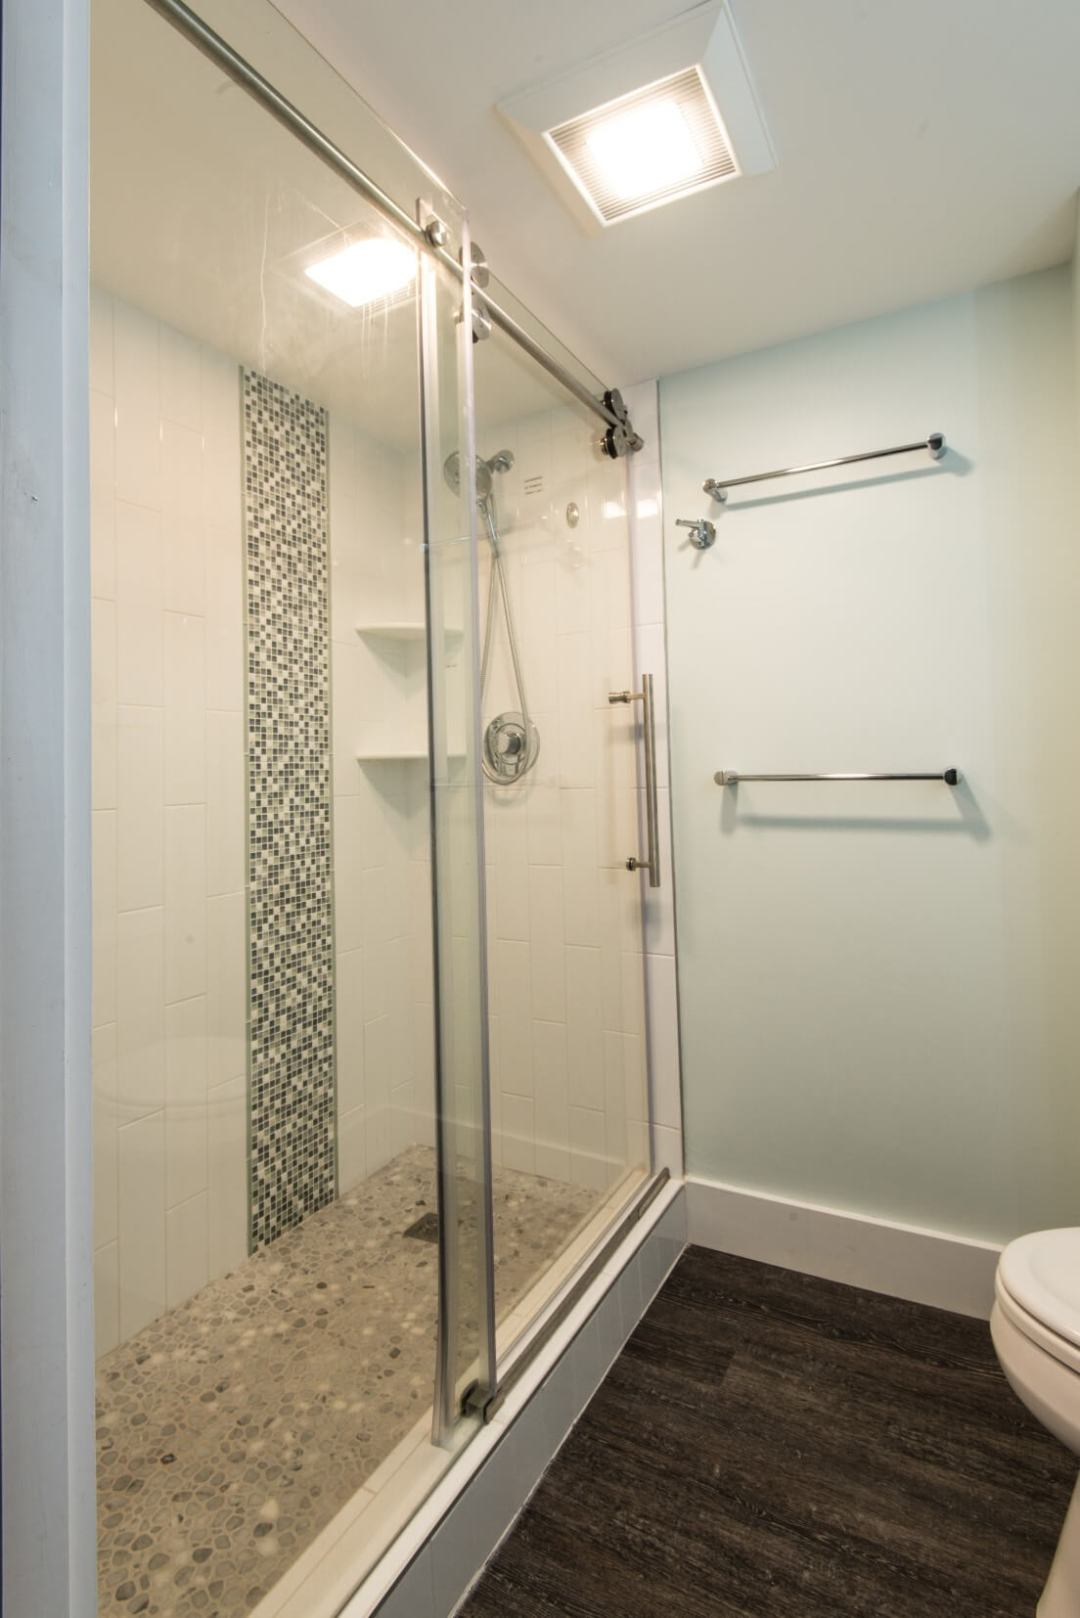 Sea Colony Condo Renovation Vol.2 Bethany Beach, DE Bathroom with Mosaic Shower Floor and Sliding Frameless Glass Shower Door